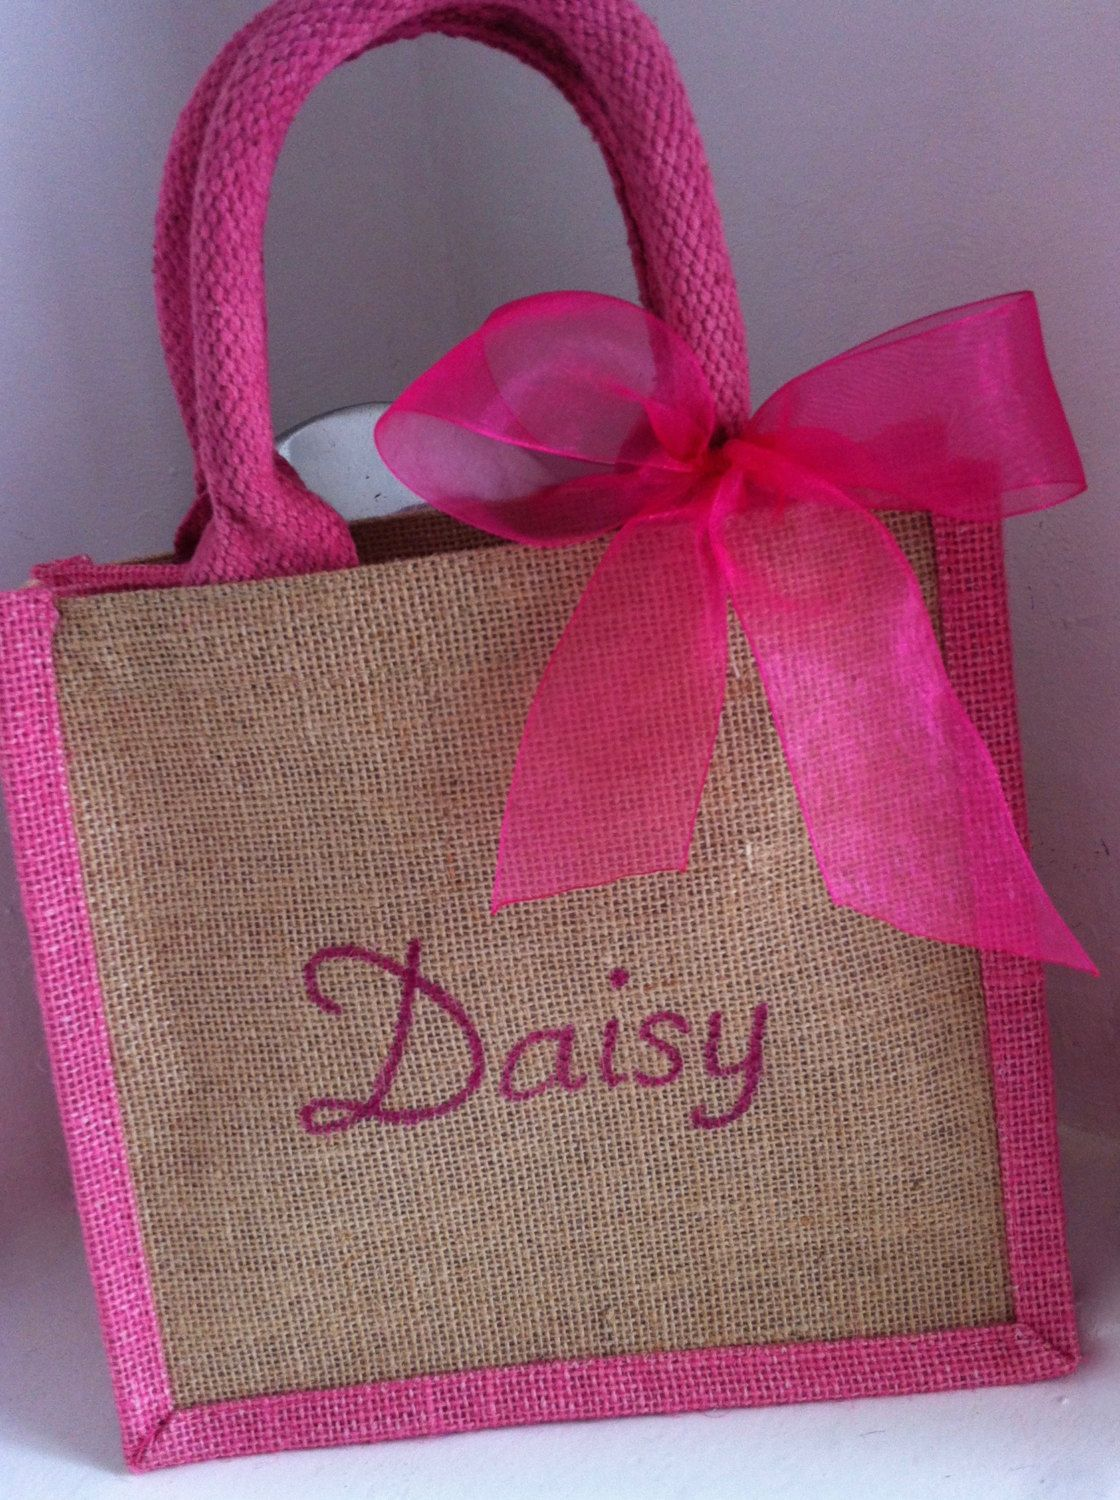 Personalised Birthday Gift Bag Thank You Princess Party Favour Lunch Name On Tote Pink Present For Girls Hen By HarlieLoves Etsy